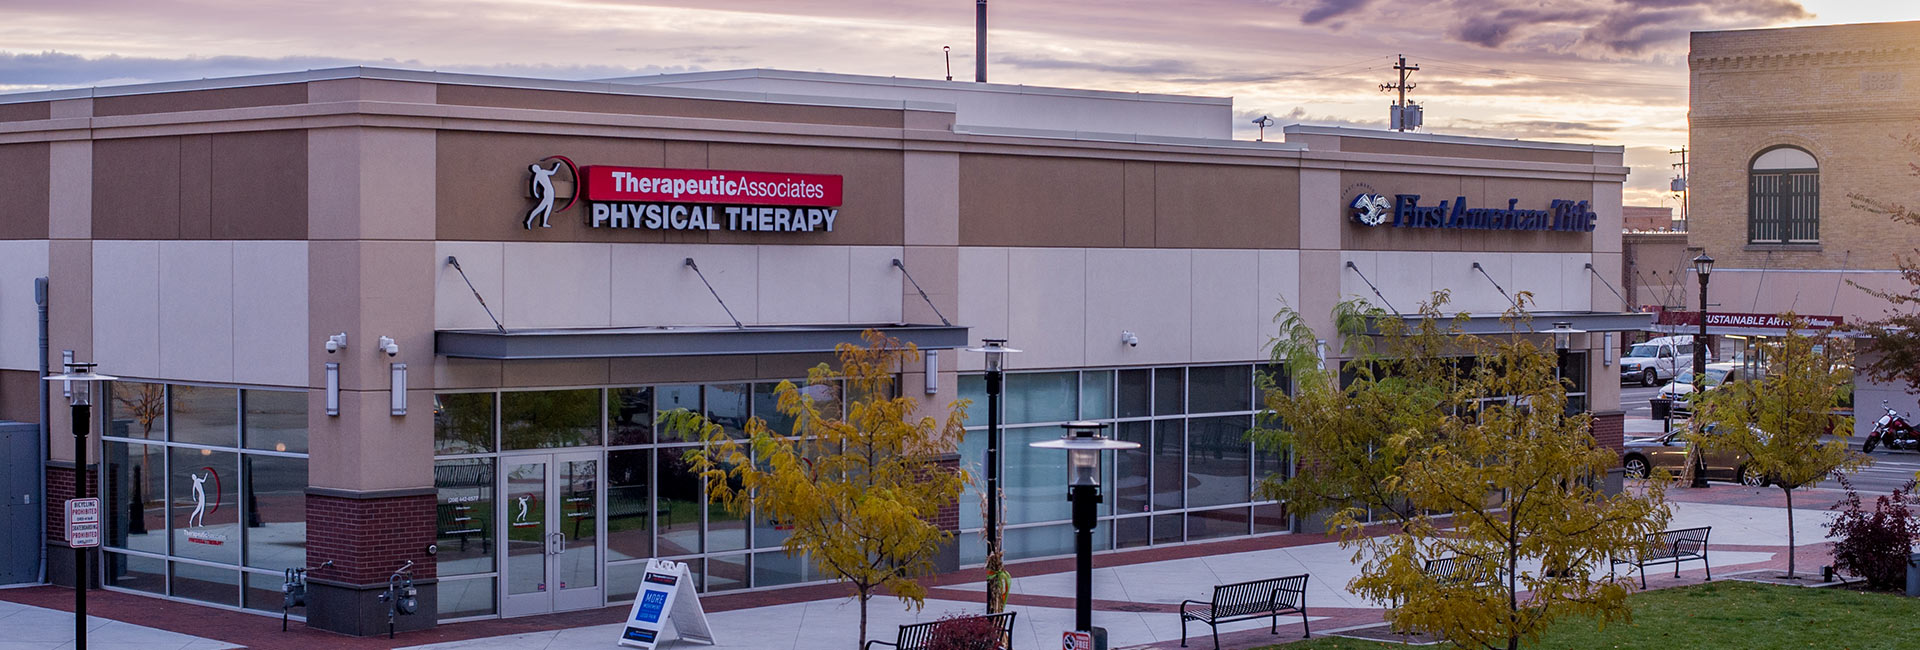 Therapeutic Associates Physical Therapy - Nampa